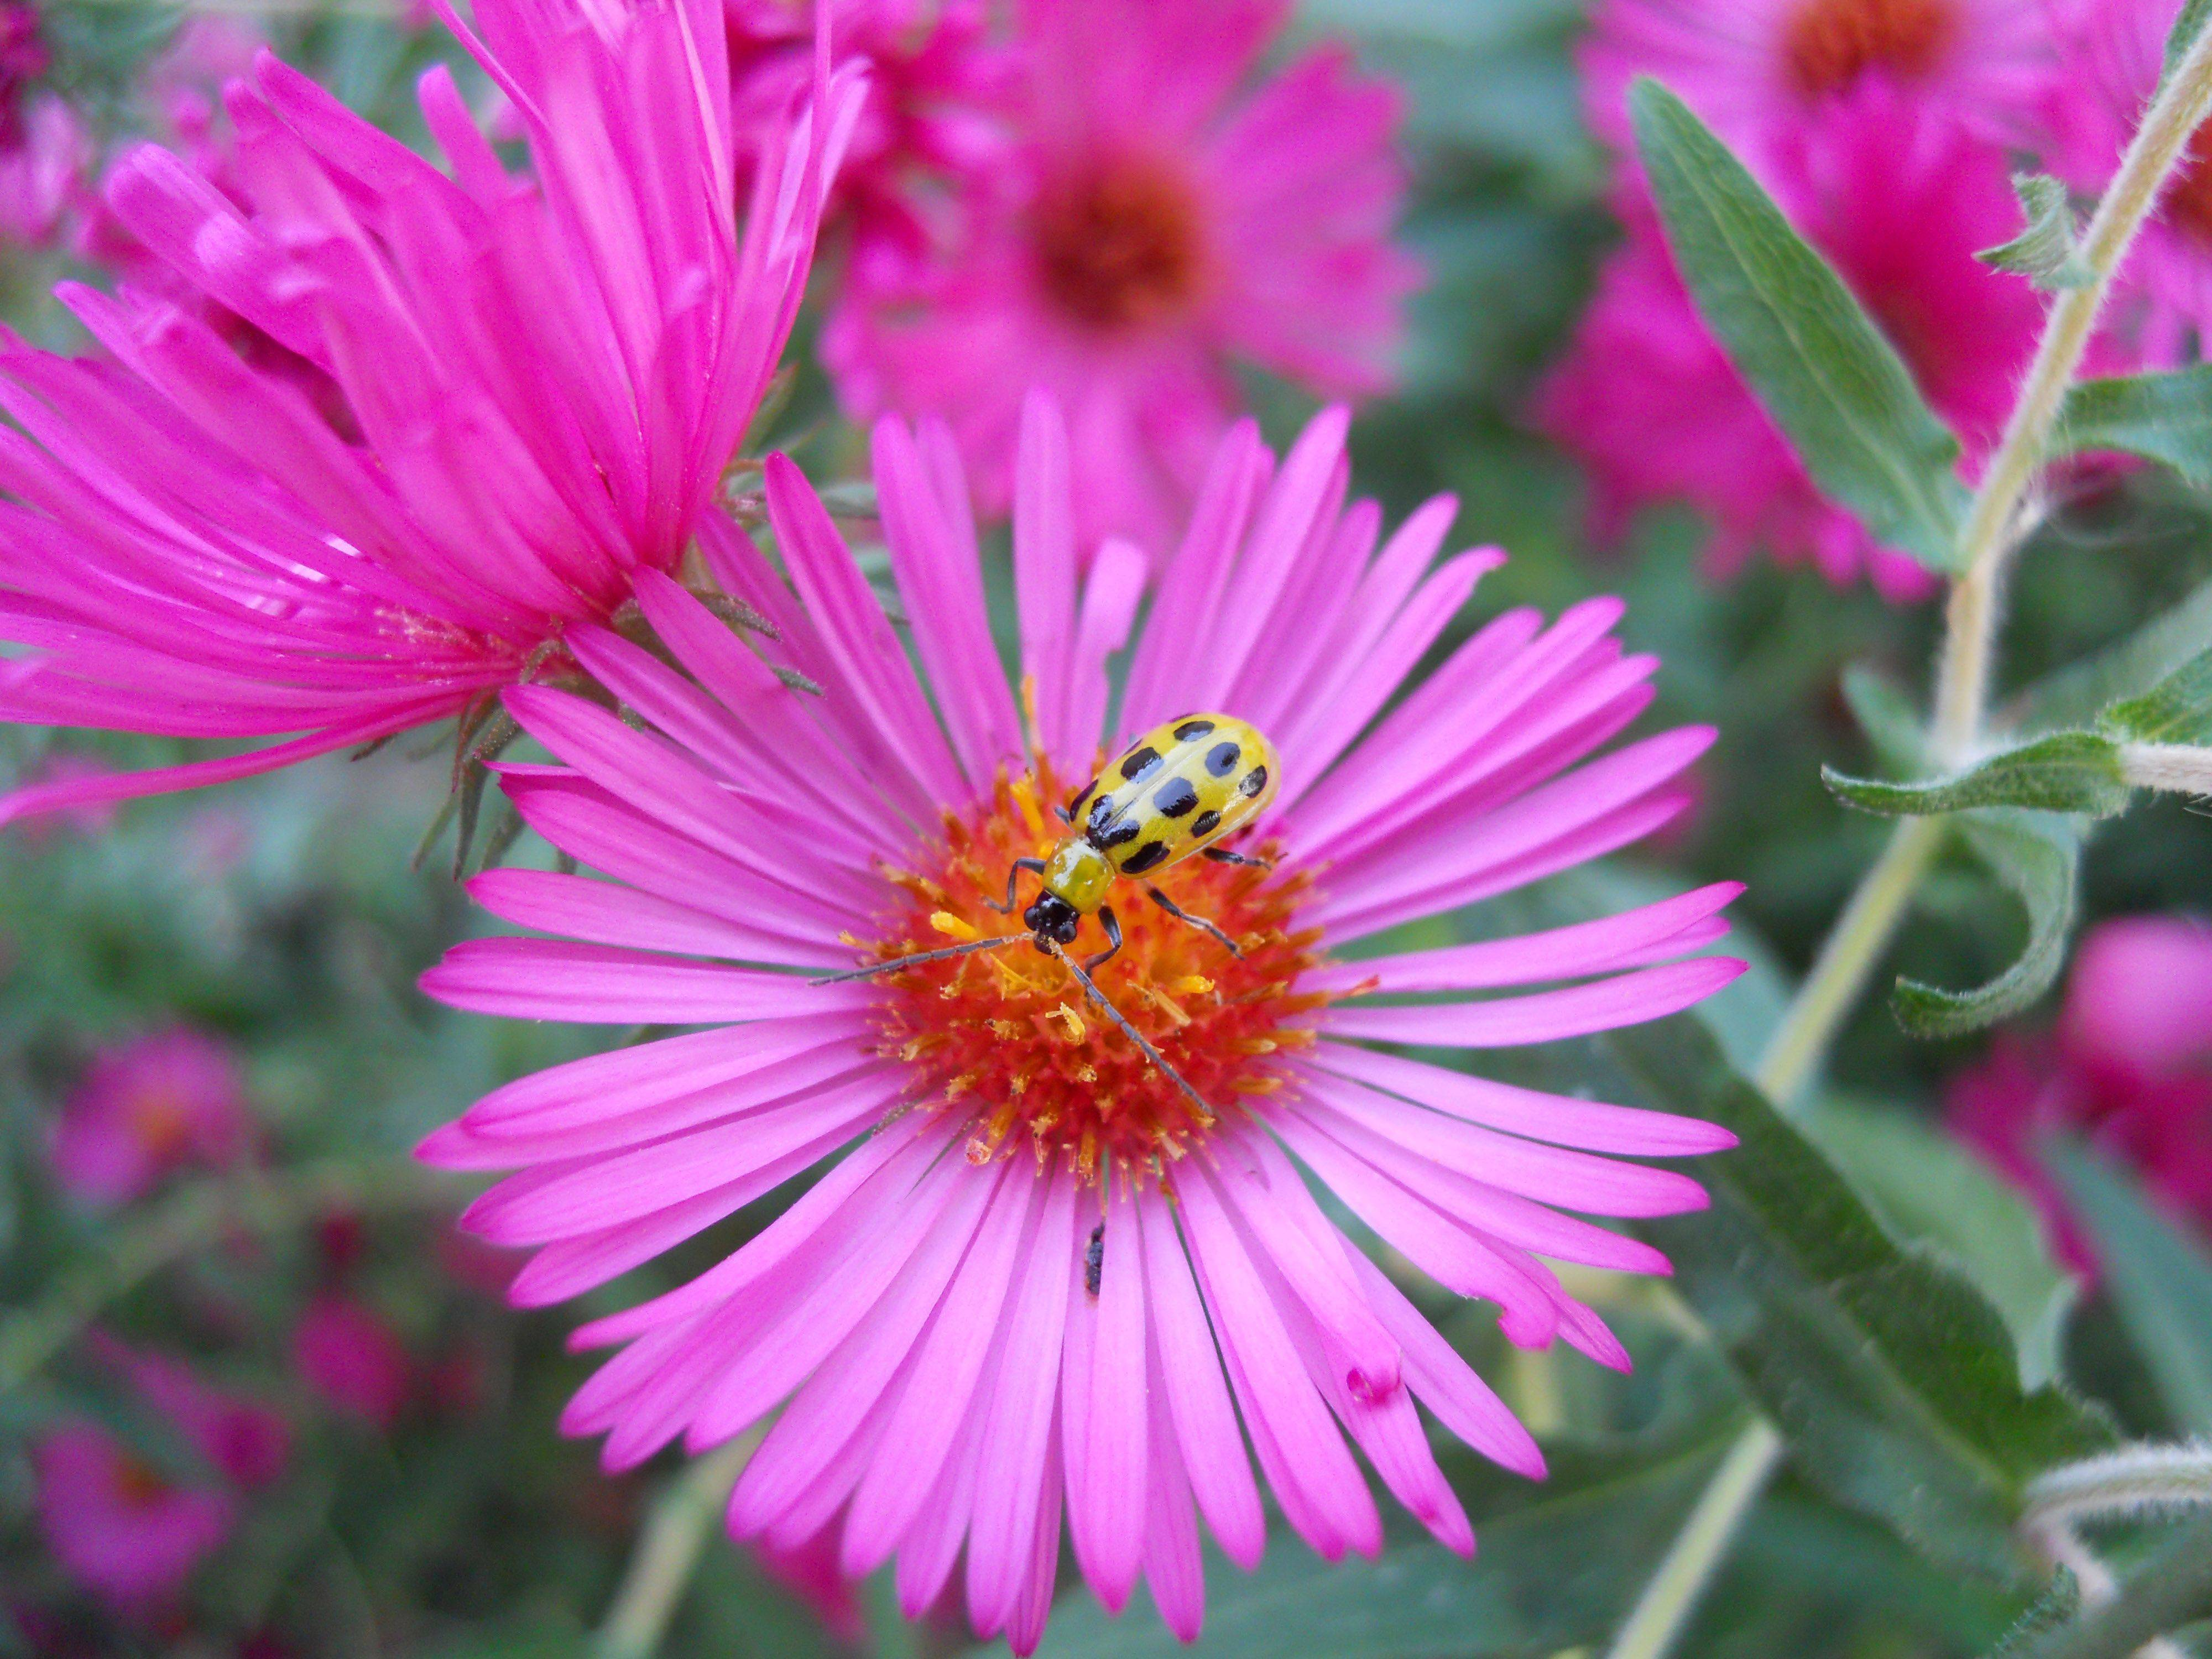 A spotted cucumber beetle on an aster flower in a garden in Elk Grove Village last month.